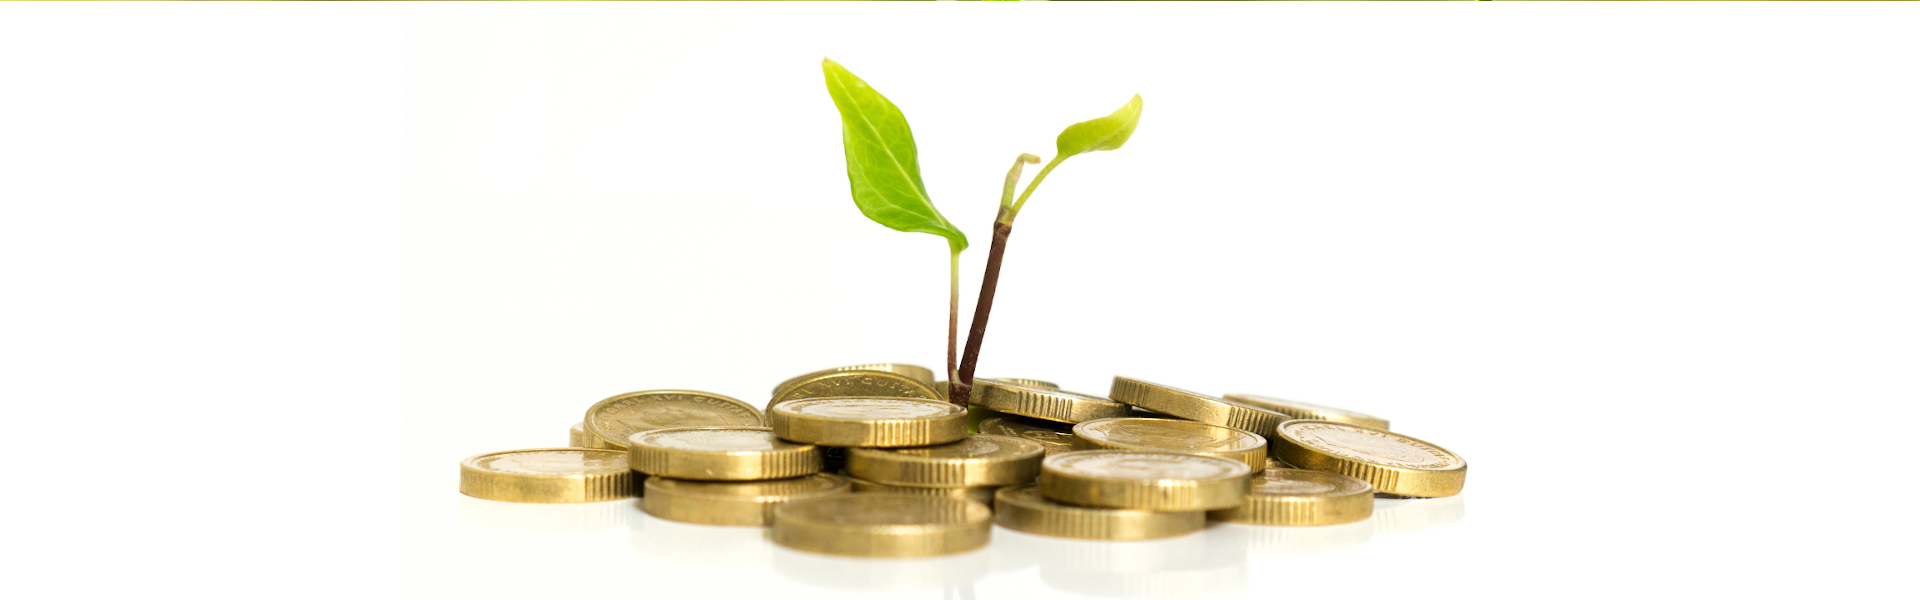 Investments - Do you need independent advice?